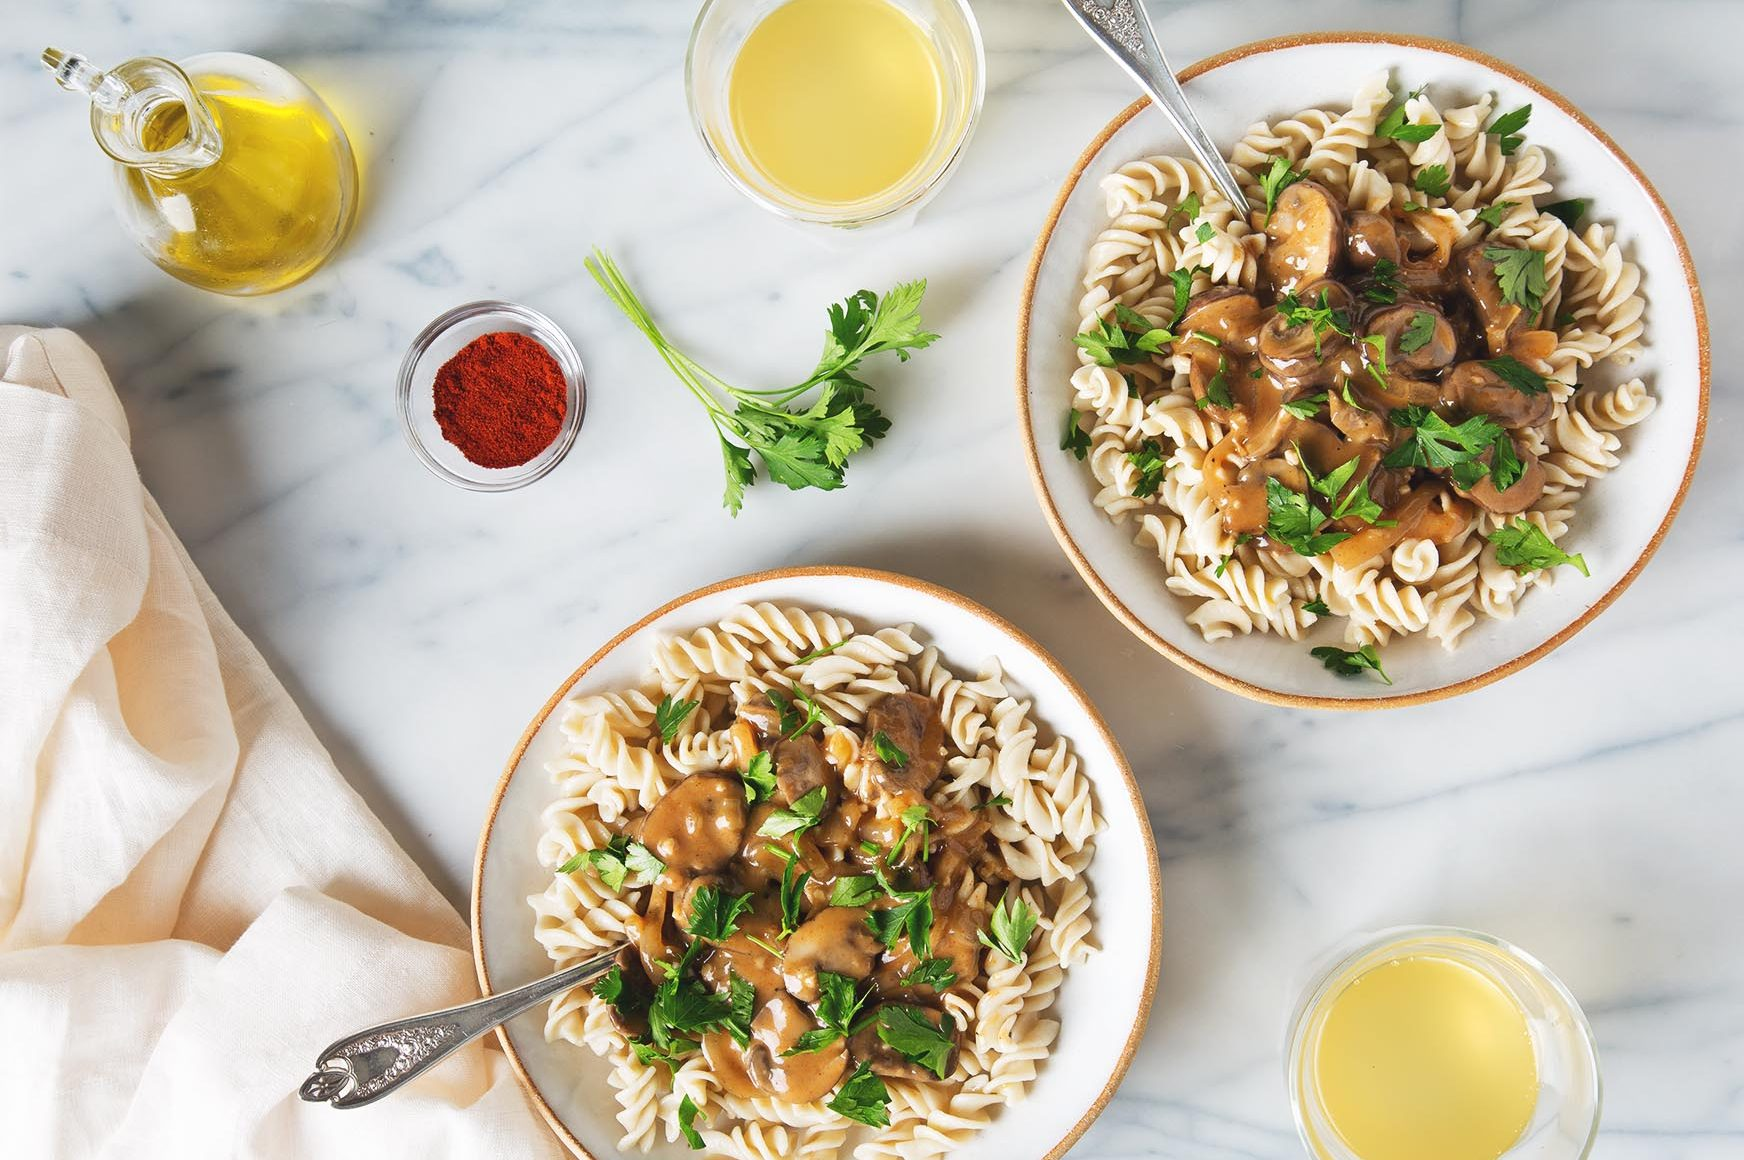 25 Minute Weeknight Mushroom Stroganoff | picklesnhoney.com #vegan #mushroom #stroganoff #dinner #recipe